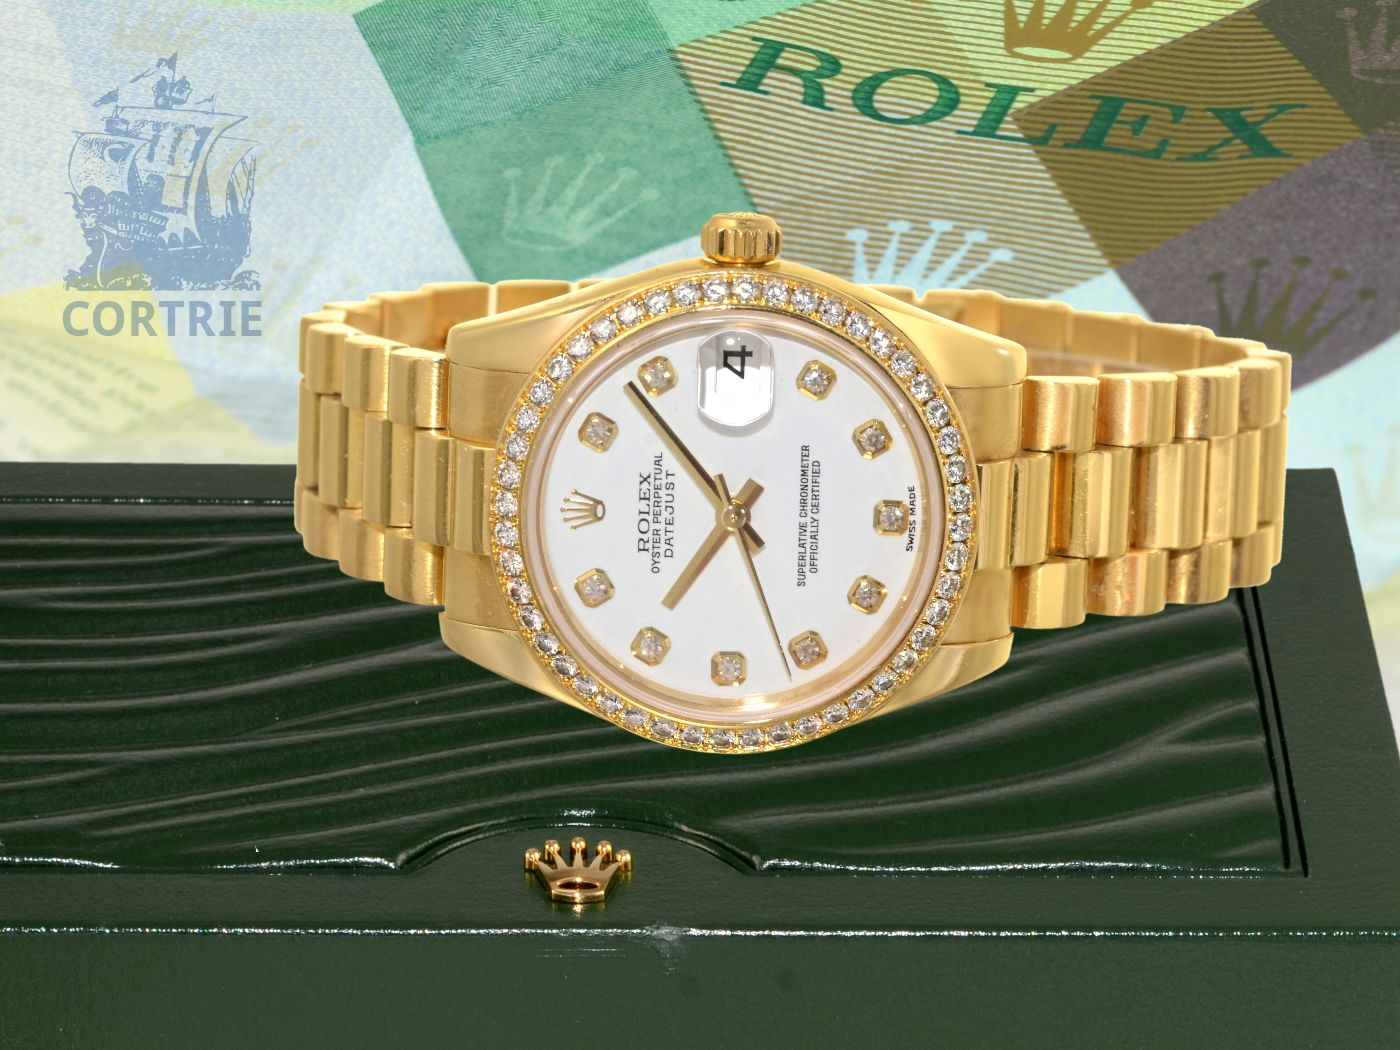 Wristwatch: luxurious edition of ROLEX OYSTER PERPETUAL DATEJUST 31mm MIDSIZE with original diamond bezel and diamond dial, original box and certificates from 2007-